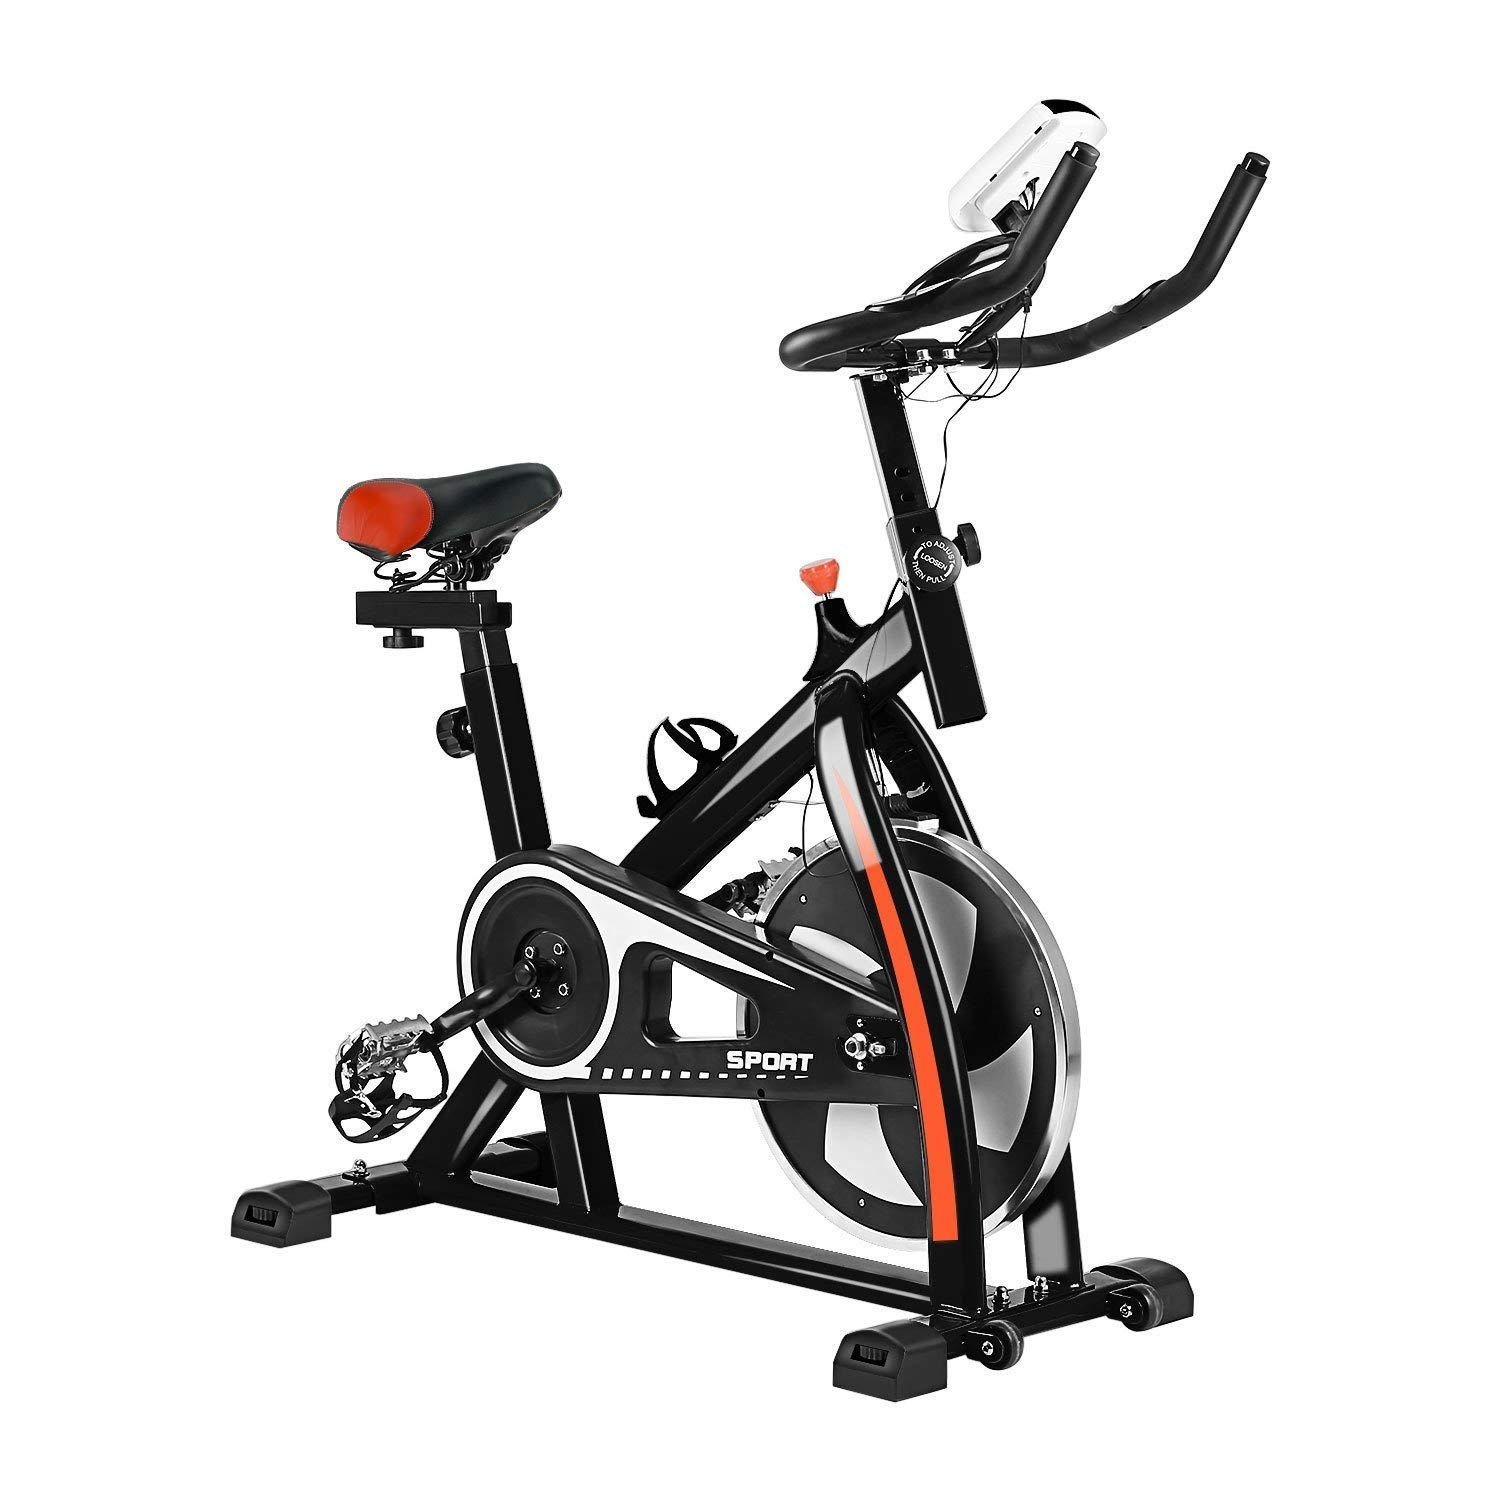 Graspwind Indoor Cycling Bike Exercise Bicycle Heart Pulse W Led